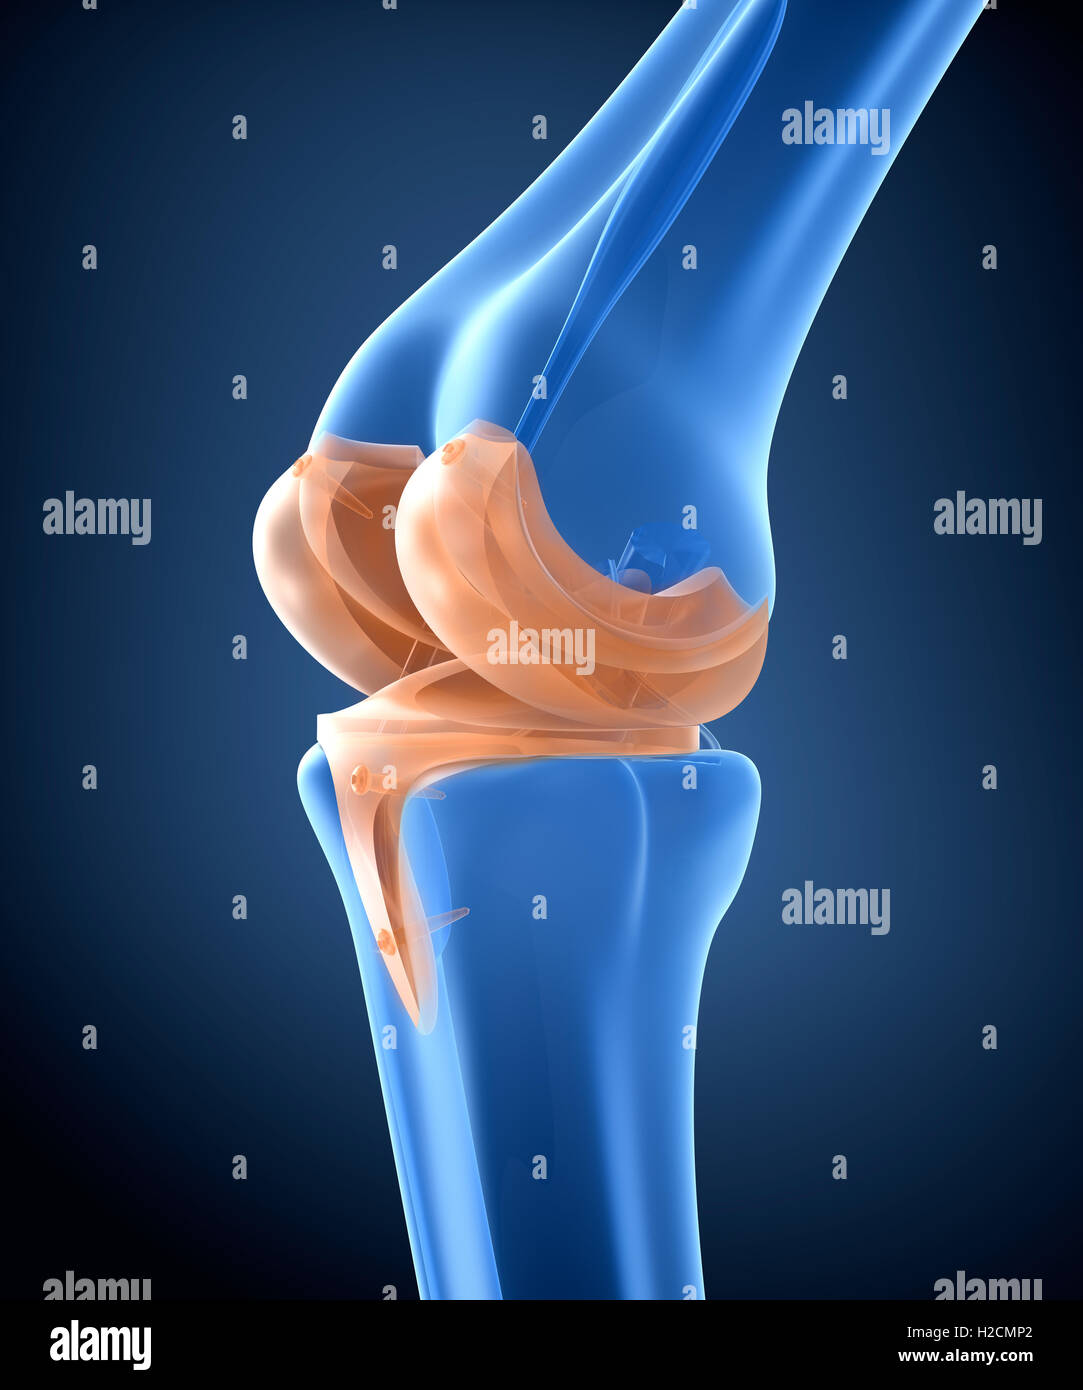 Hinge Joint Stock Photos Hinge Joint Stock Images Alamy